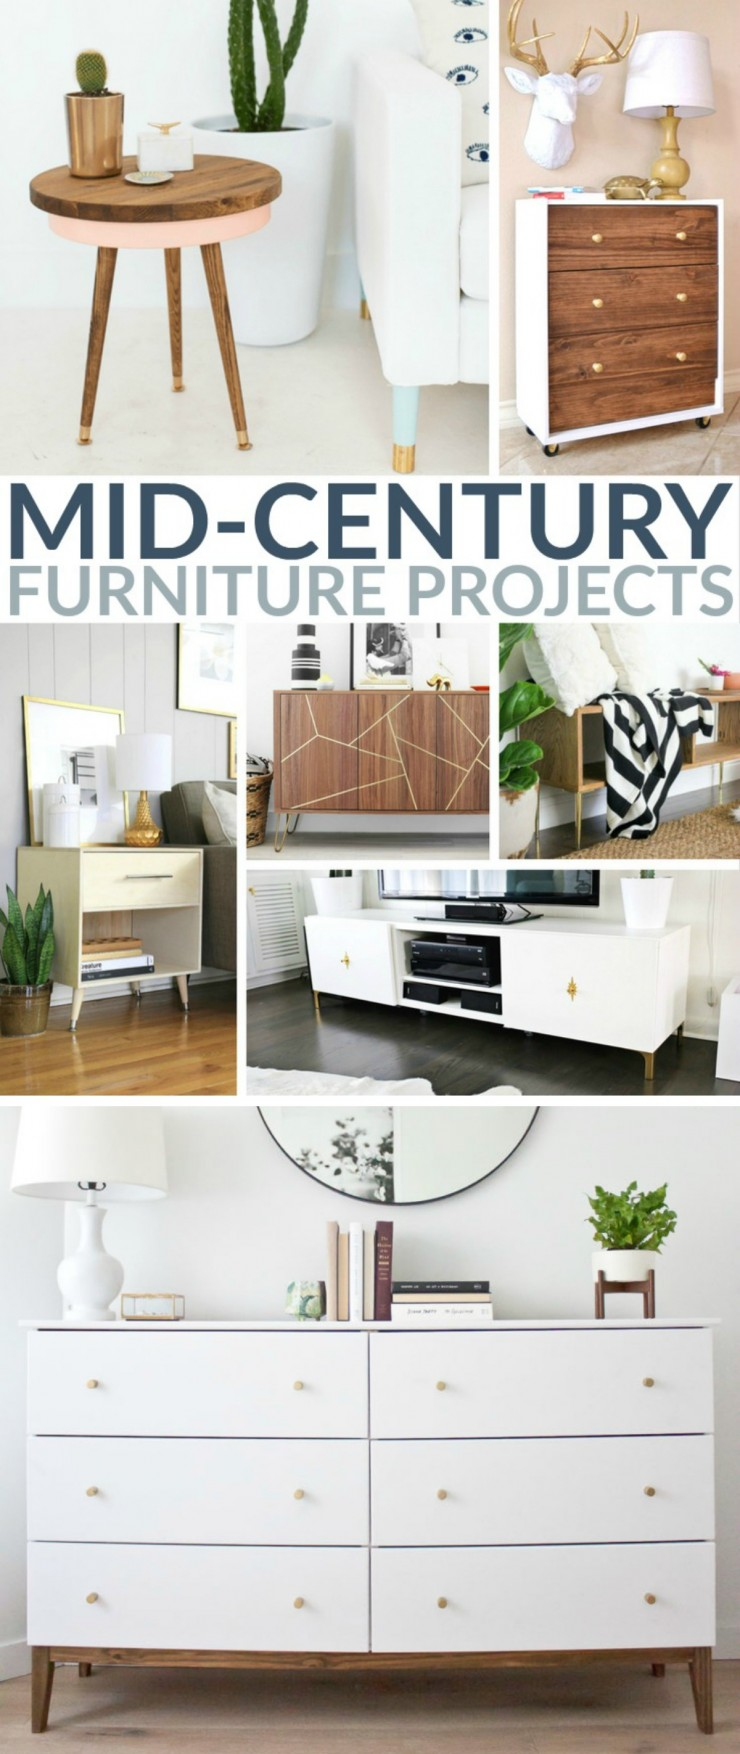 DIY Mid-Century furniture. So you want a Mid Century chair? No problem! Or maybe a dresser? Totally doable. If you're still having doubts, take a look at these awesome Mid-Century furniture projects